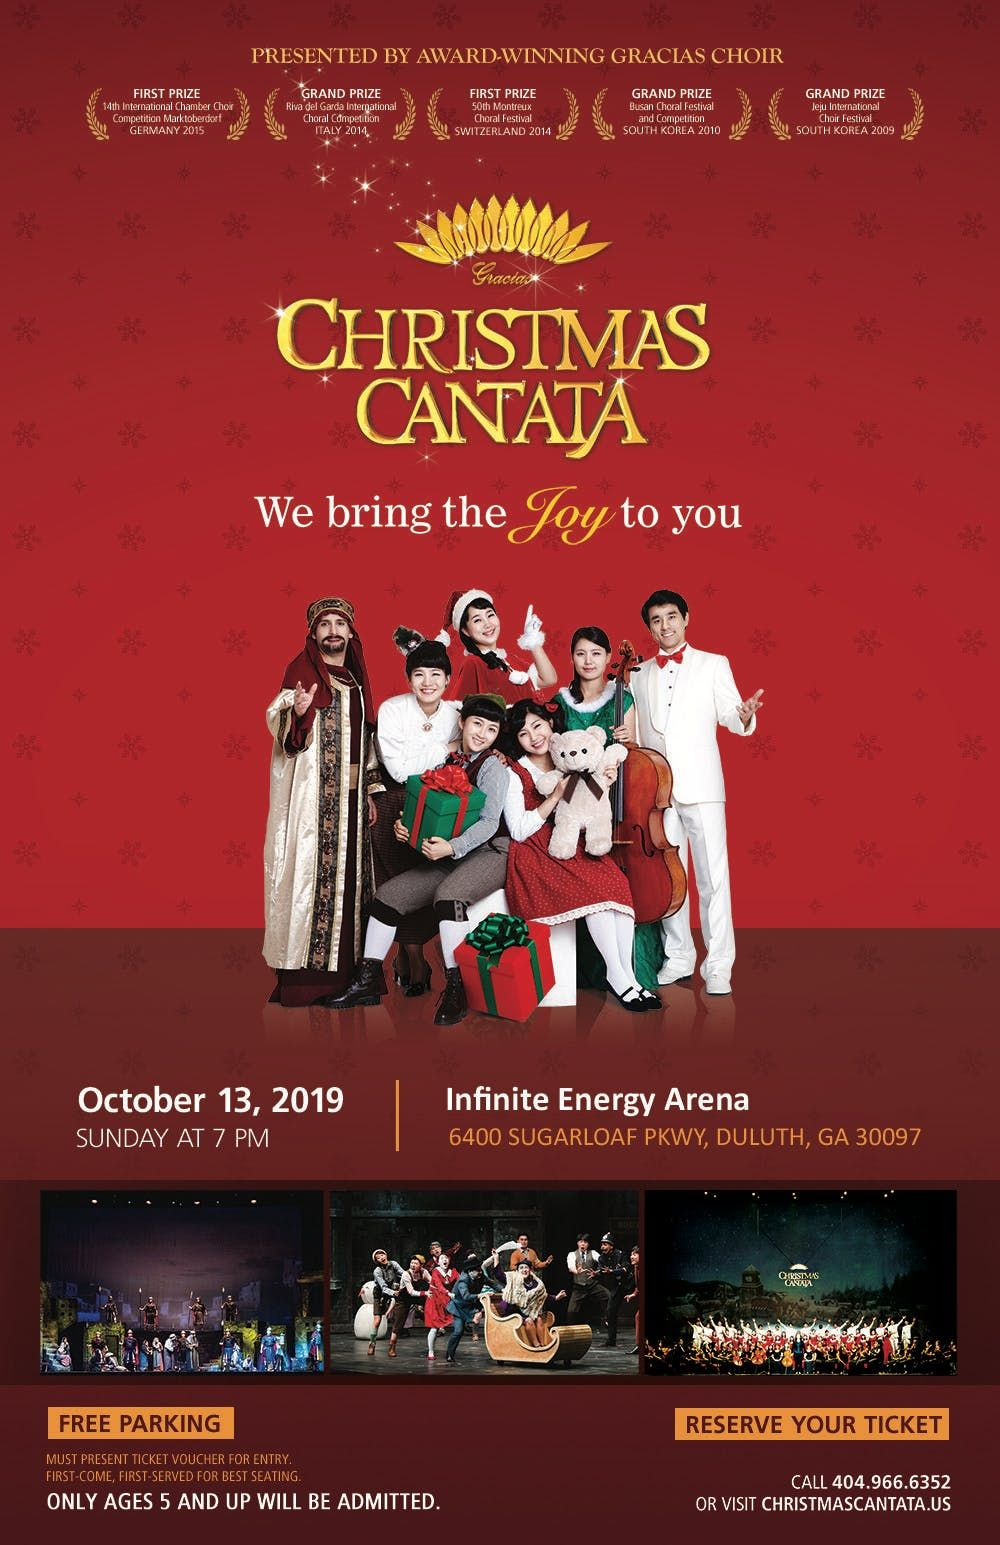 Christmas Cantata 2019 New Orleans.2019 Gracias Christmas Cantata Us Tour Atlanta At Infinite